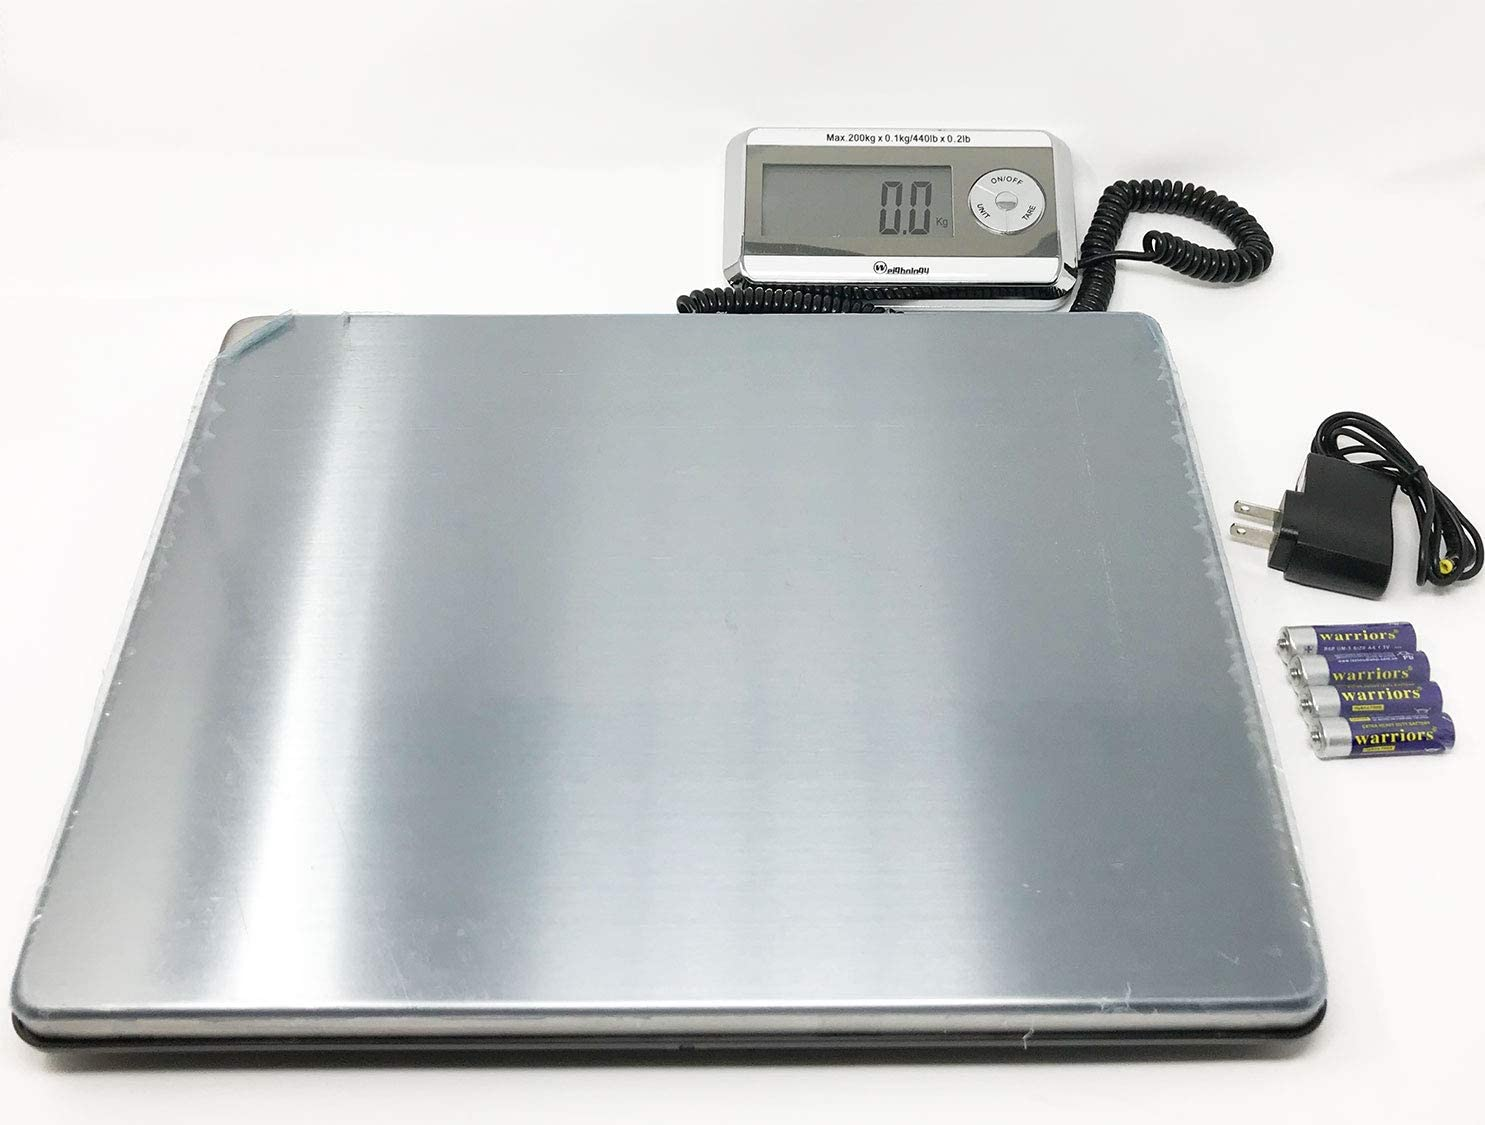 Weighology Heavy Duty Digital Postal Parcel Scale UPS Post Office Scale (440 Lb Large Platform Stainless Steel) : Office Products